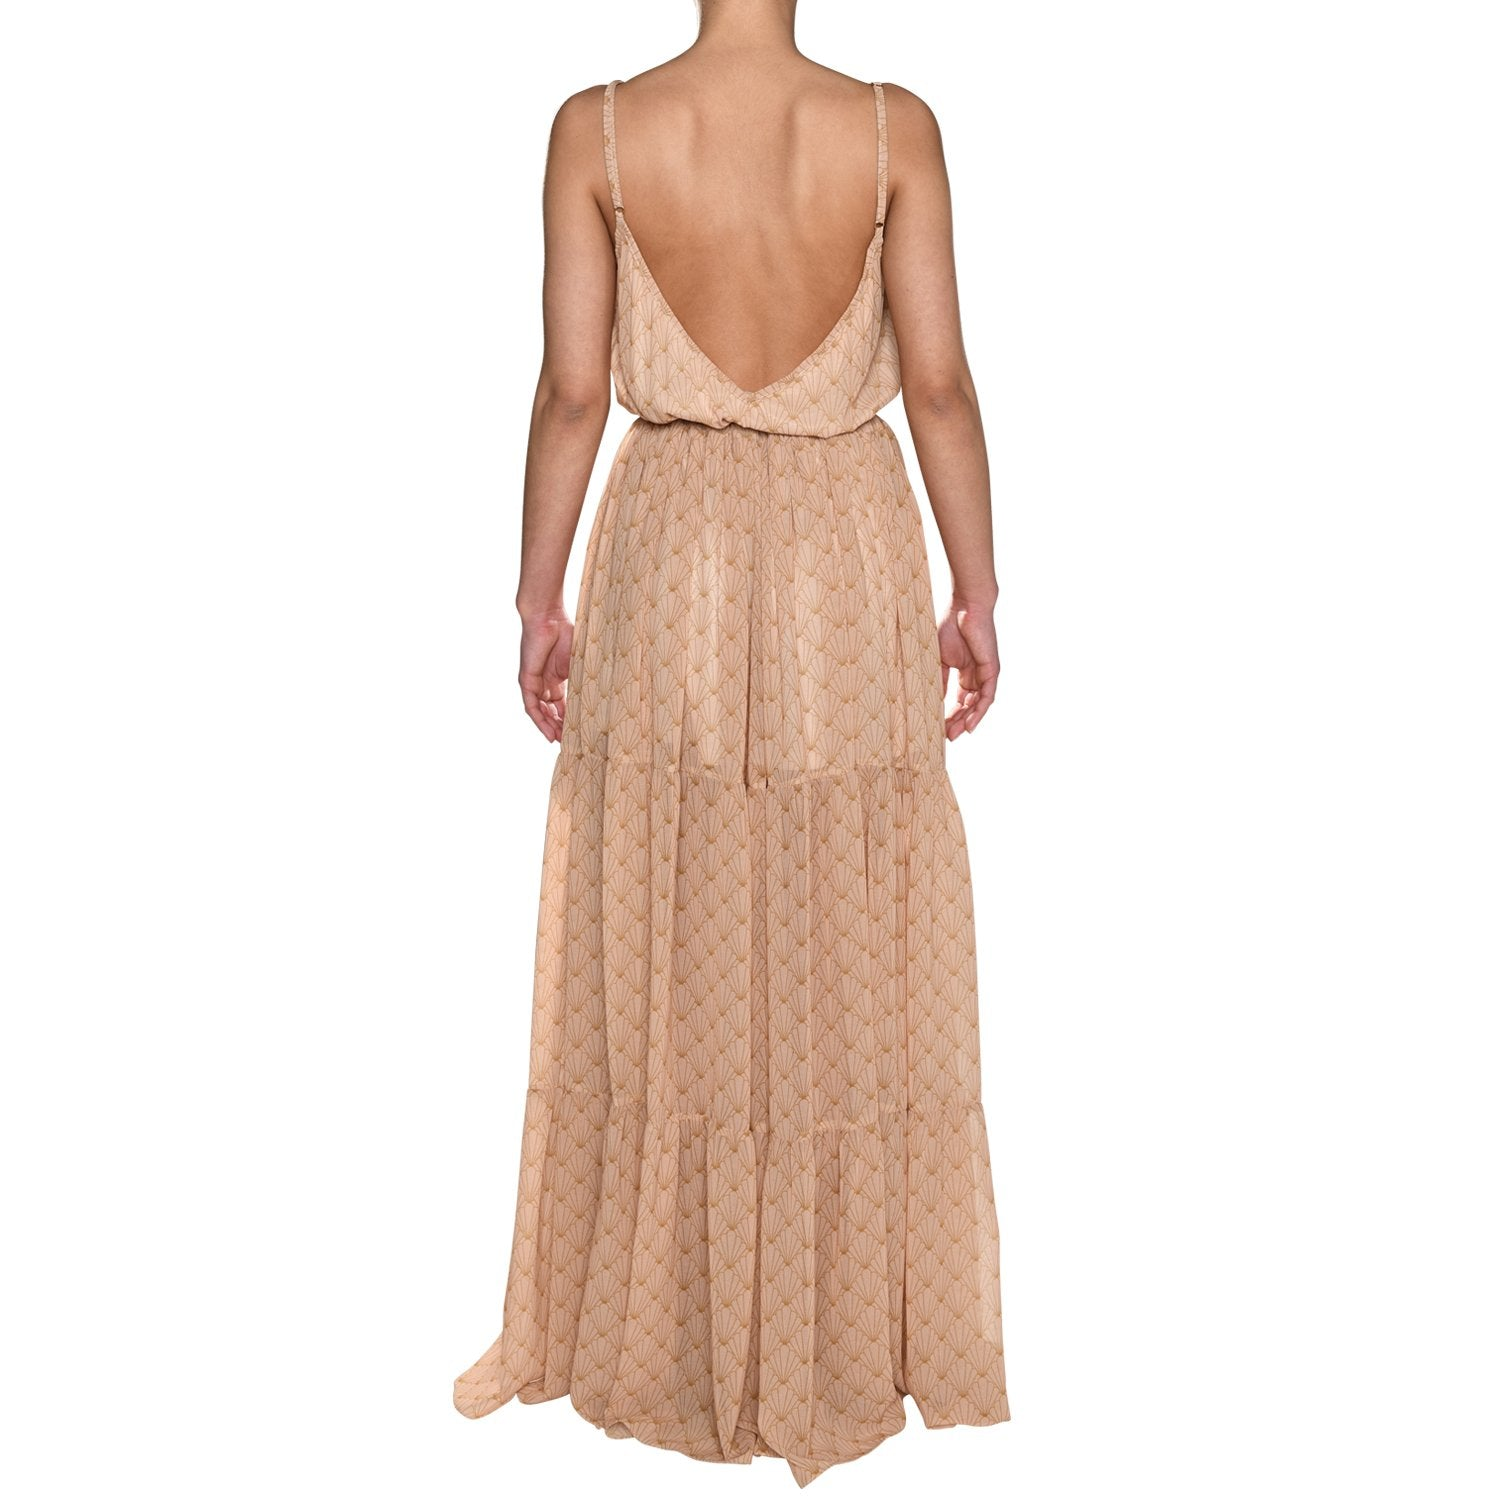 Nude Shell Maxi Ruffle Dress